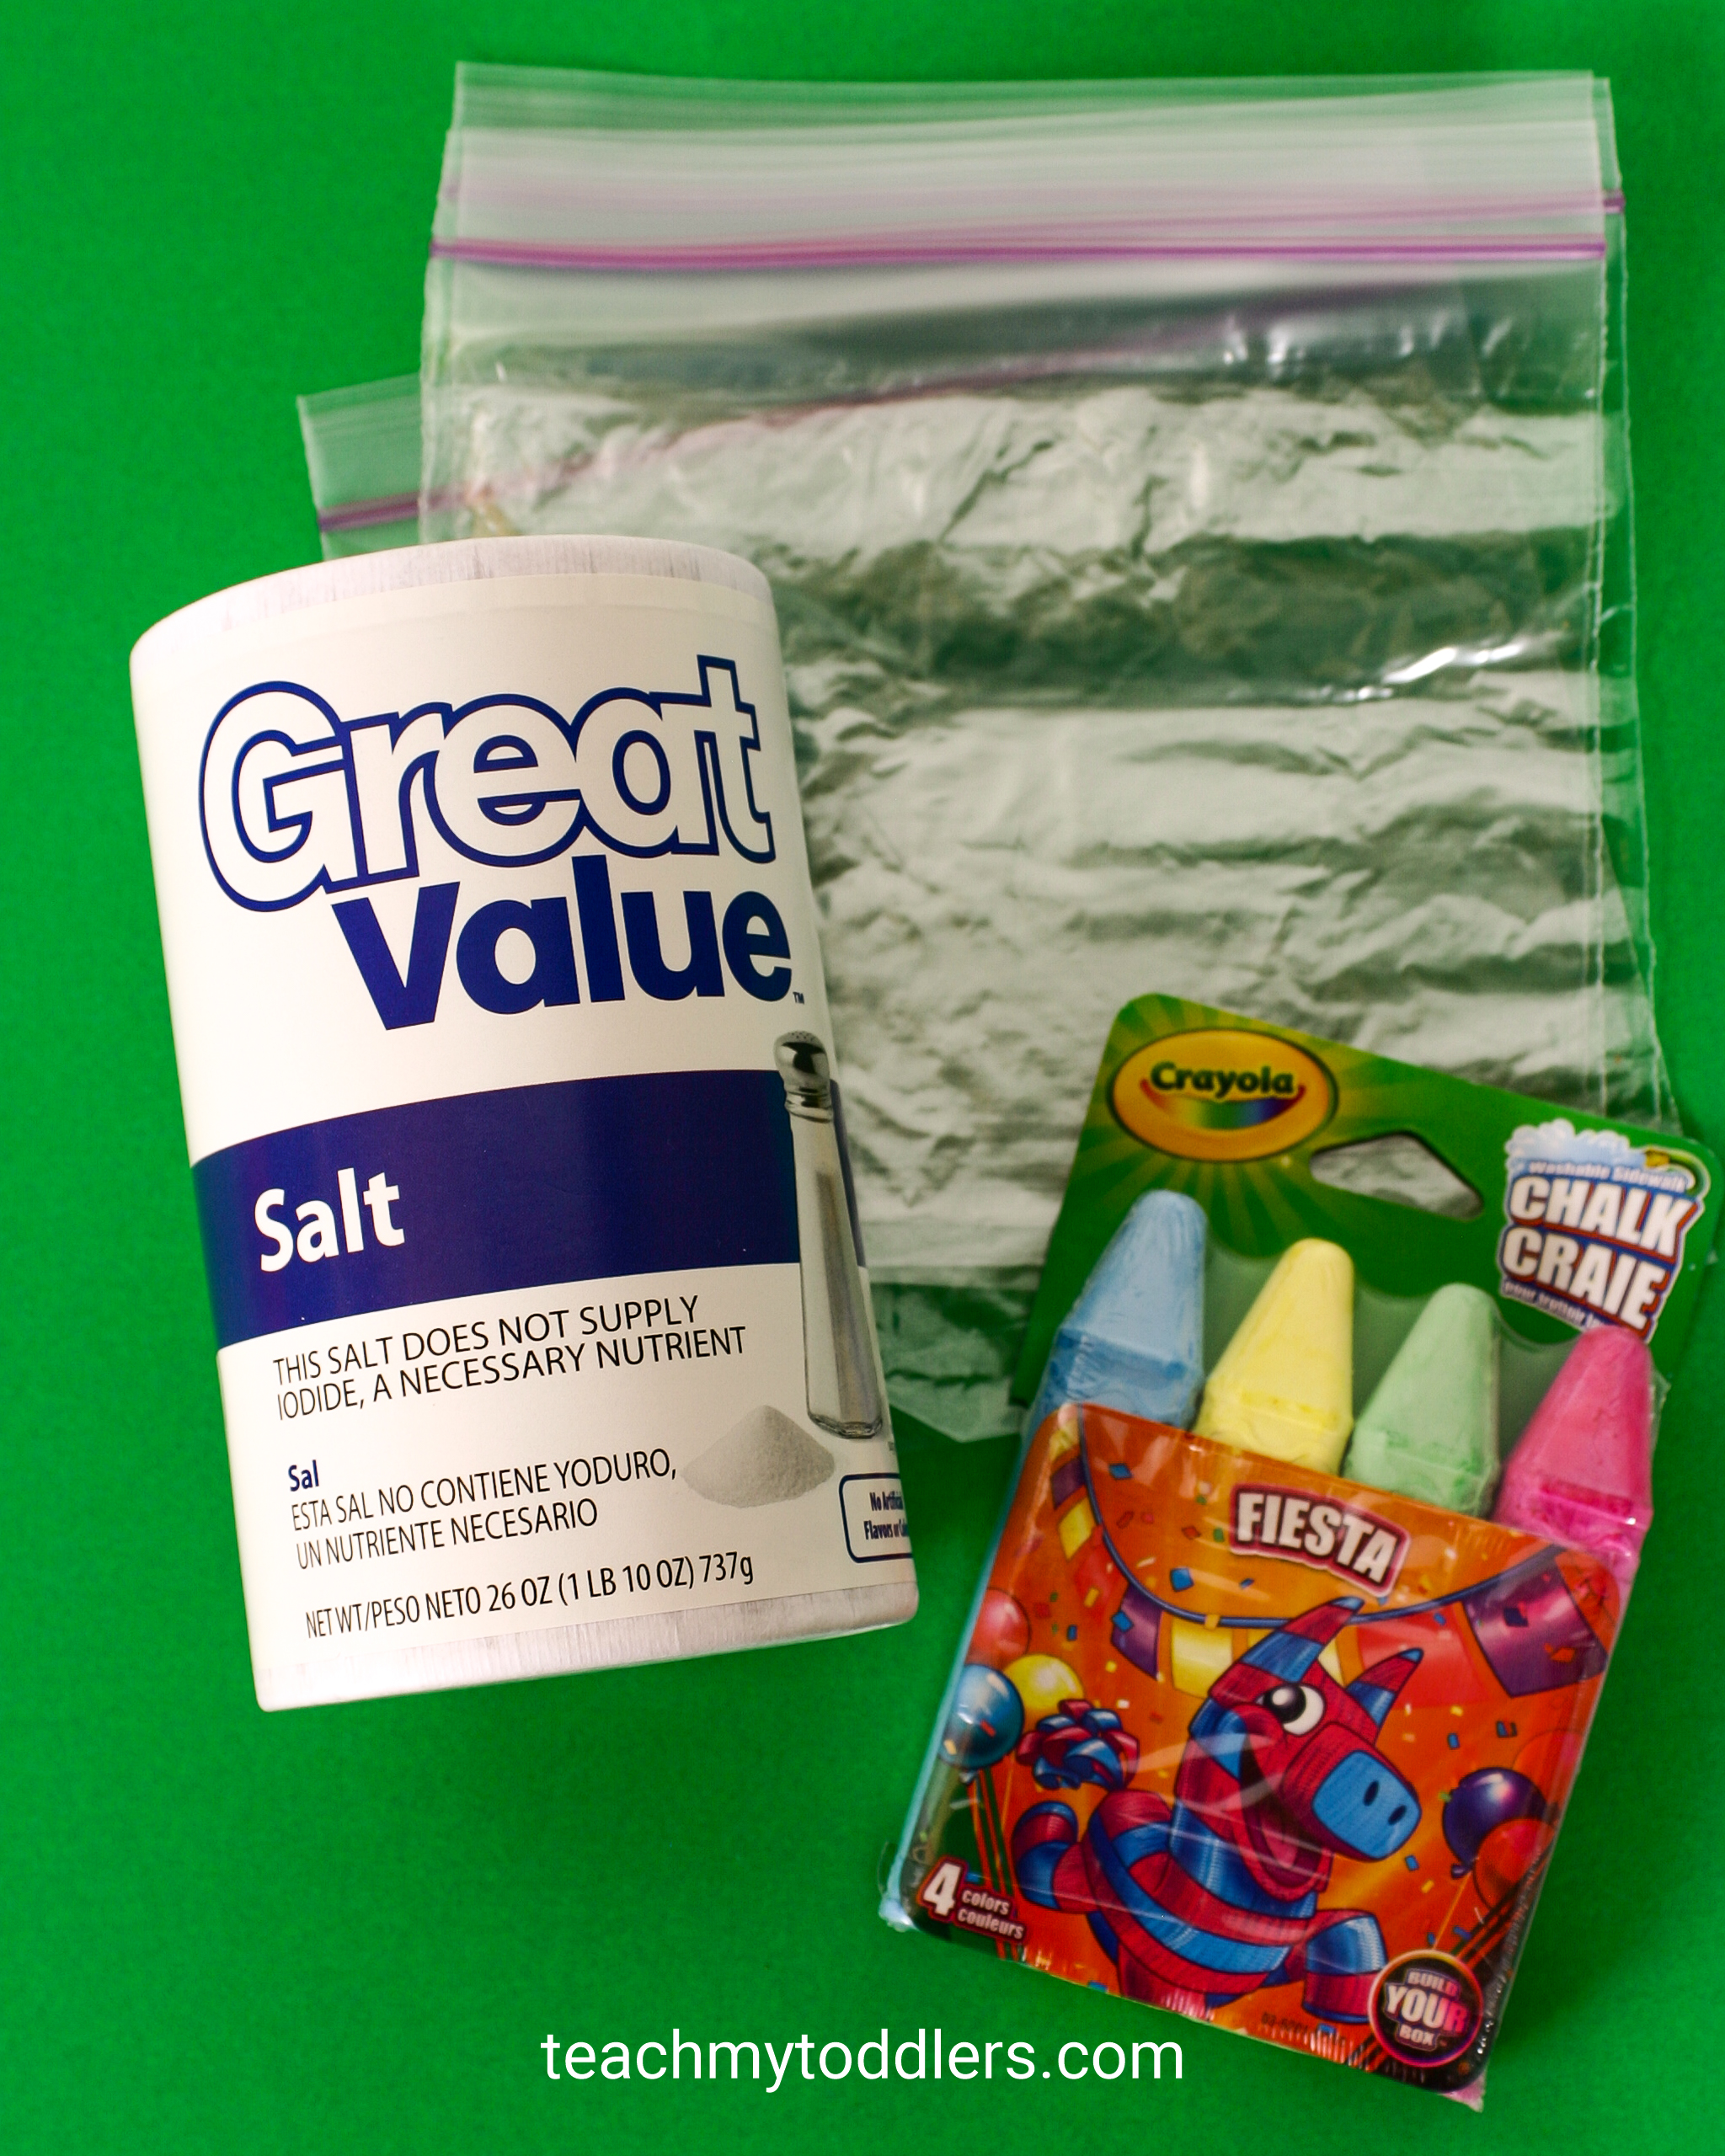 Find out how to make diy colored salt for your teach my toddler projects